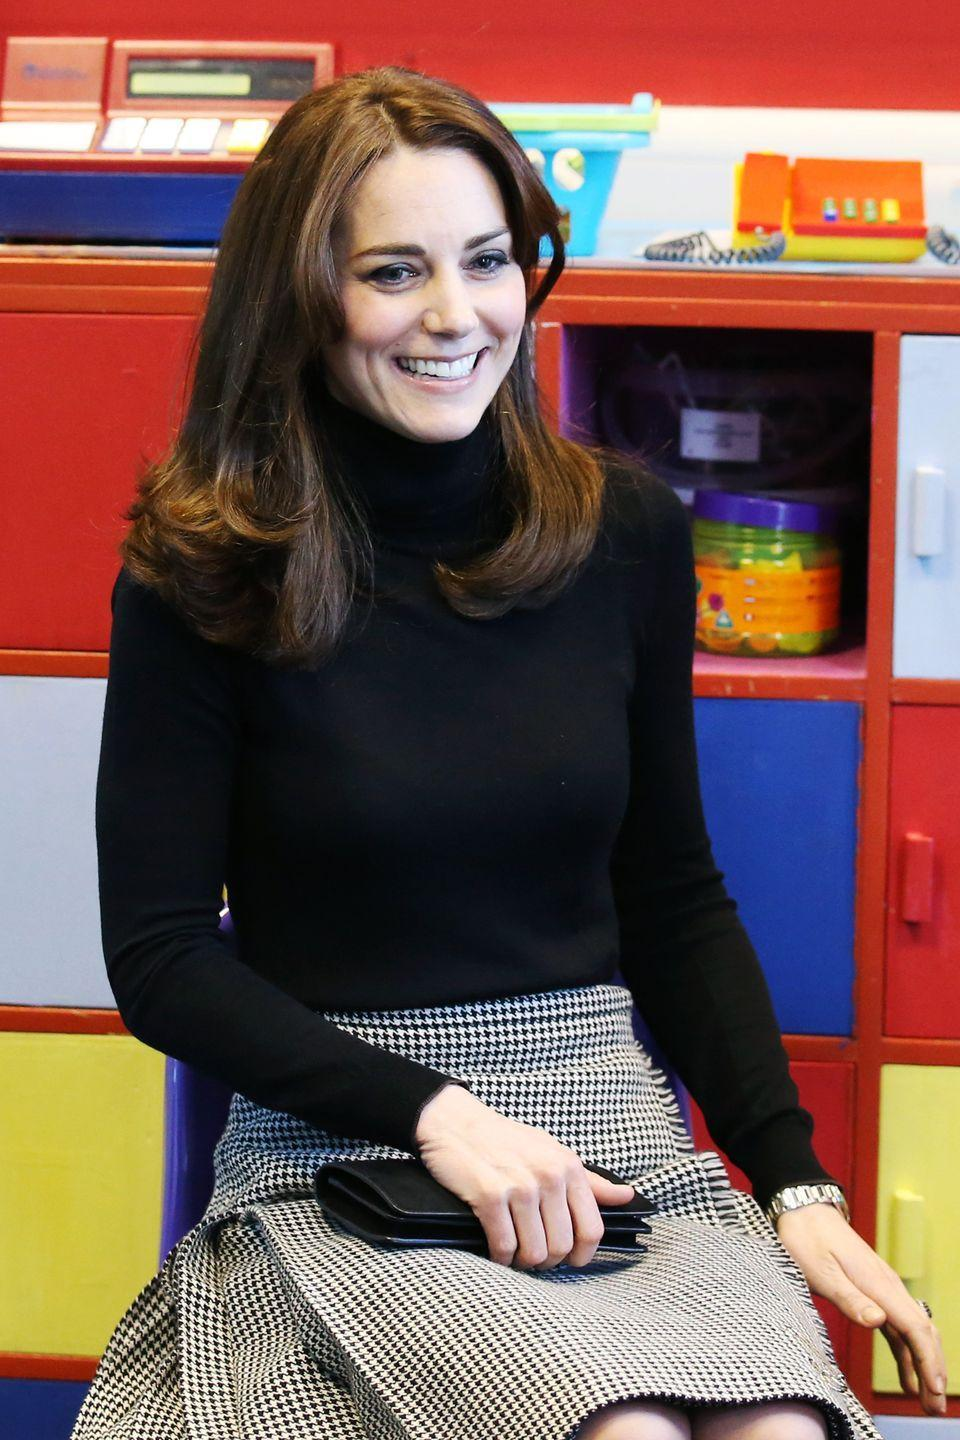 """<p>In accord with Scottish fashion, the Duchess also wore a kilt by new brand <a href=""""http://lekilt.co.uk/shop/classic-houndstooth-long"""" rel=""""nofollow noopener"""" target=""""_blank"""" data-ylk=""""slk:Le Kilt"""" class=""""link rapid-noclick-resp"""">Le Kilt</a>, as she made her first stop at St. Catherine's Primary School. </p>"""